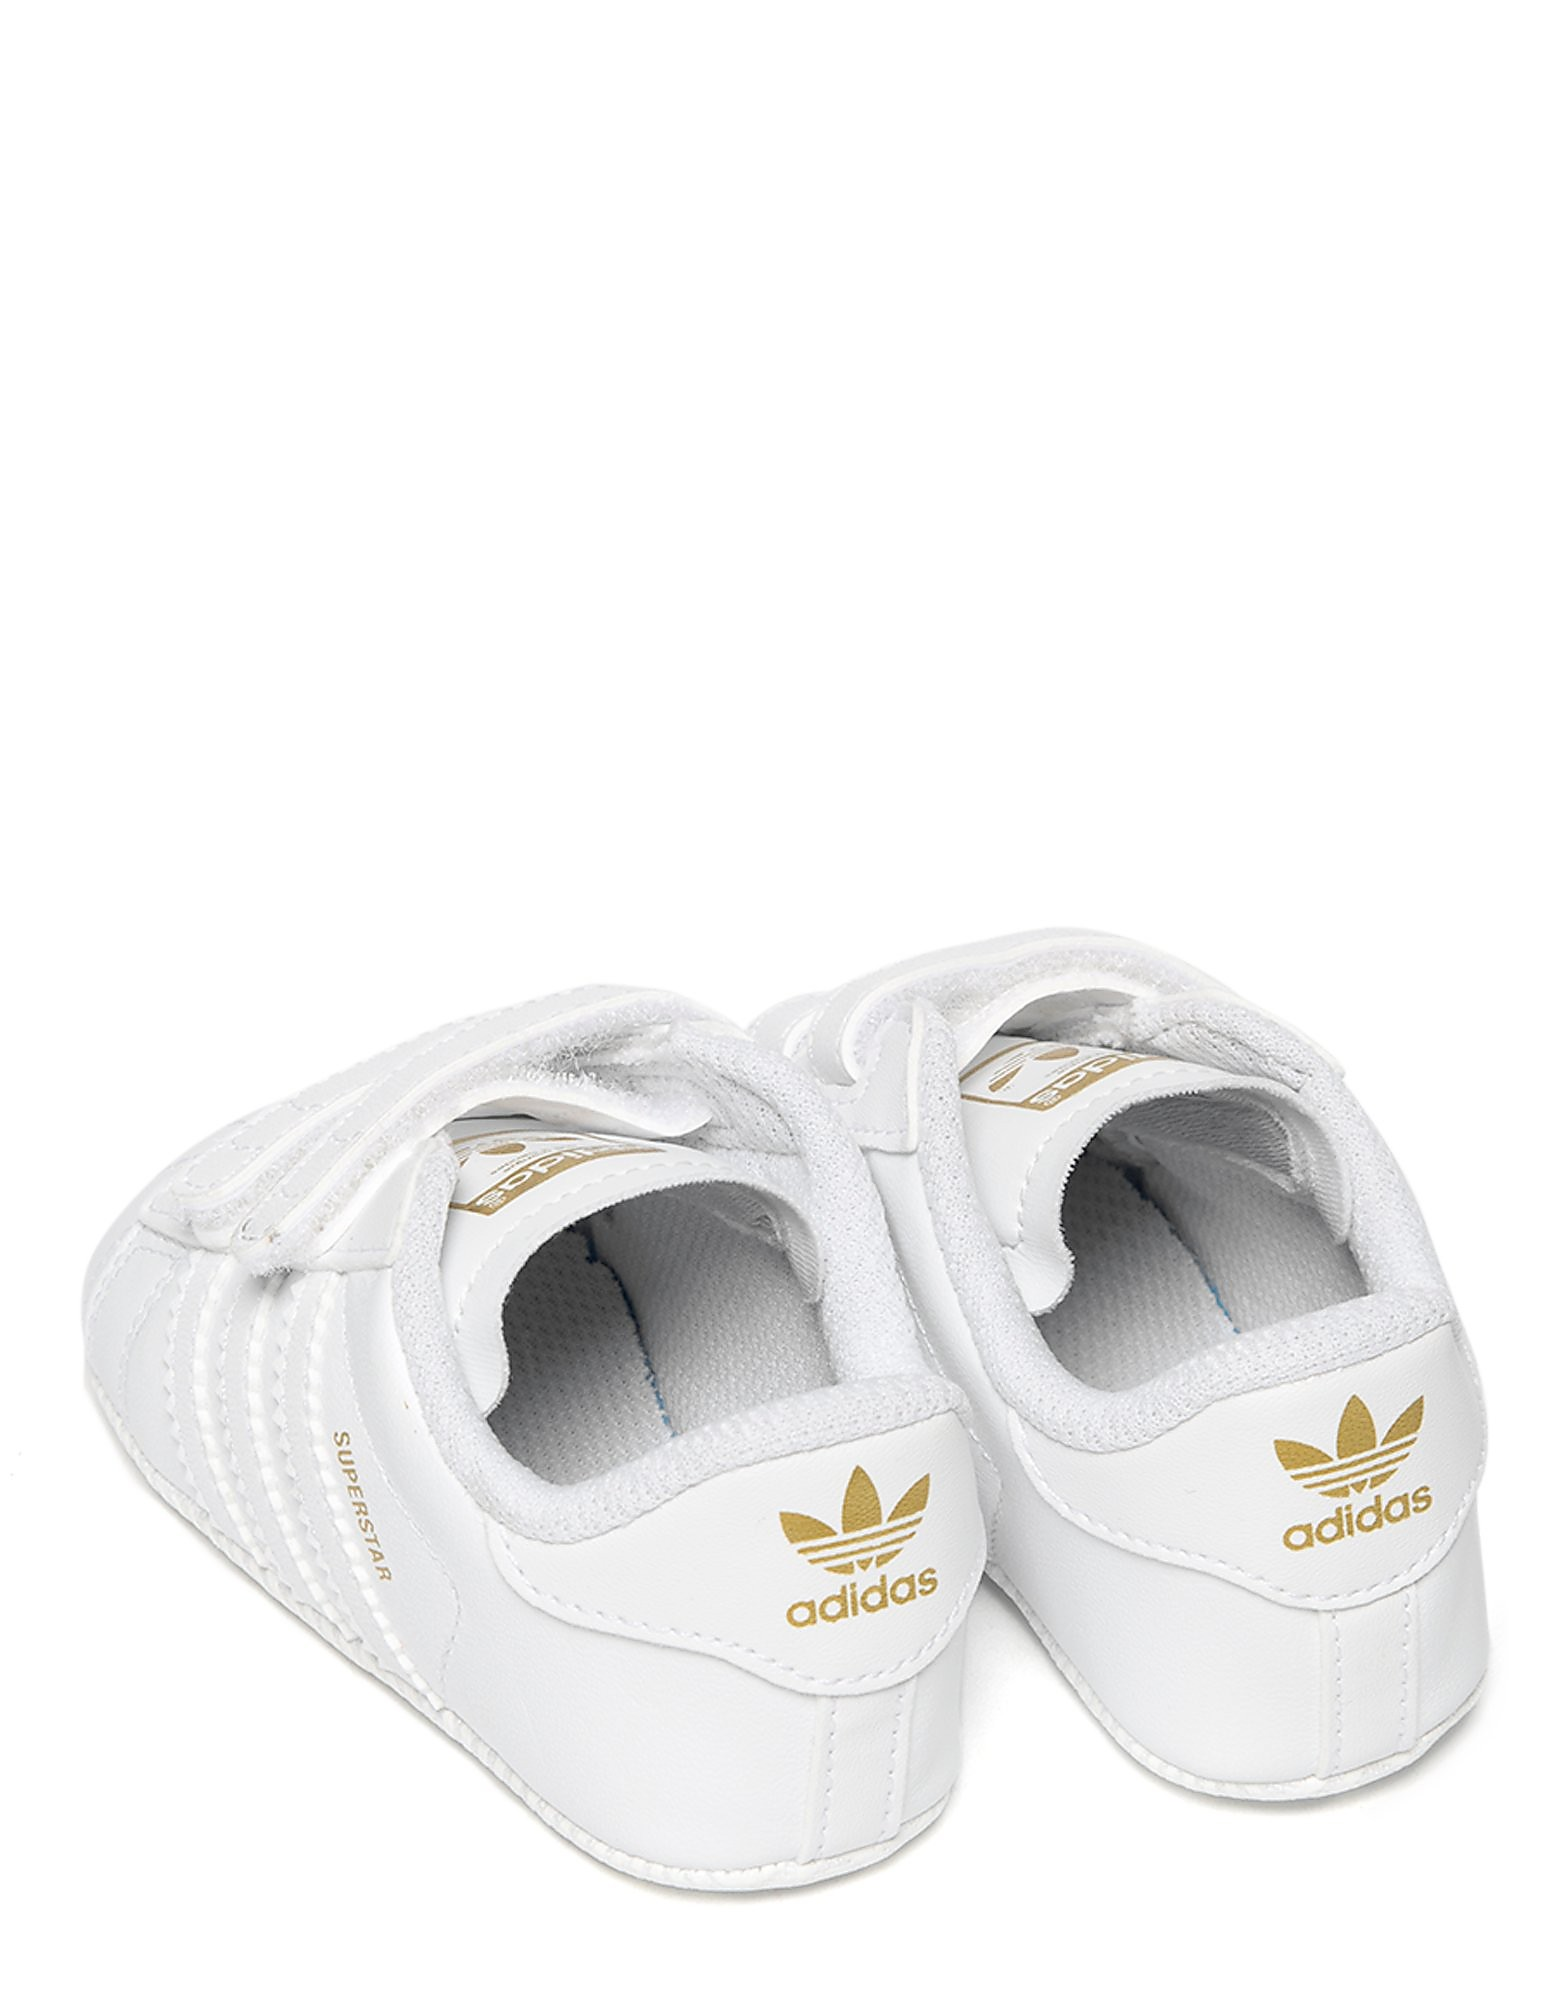 adidas Originals Superstar Crib Kleinkinder